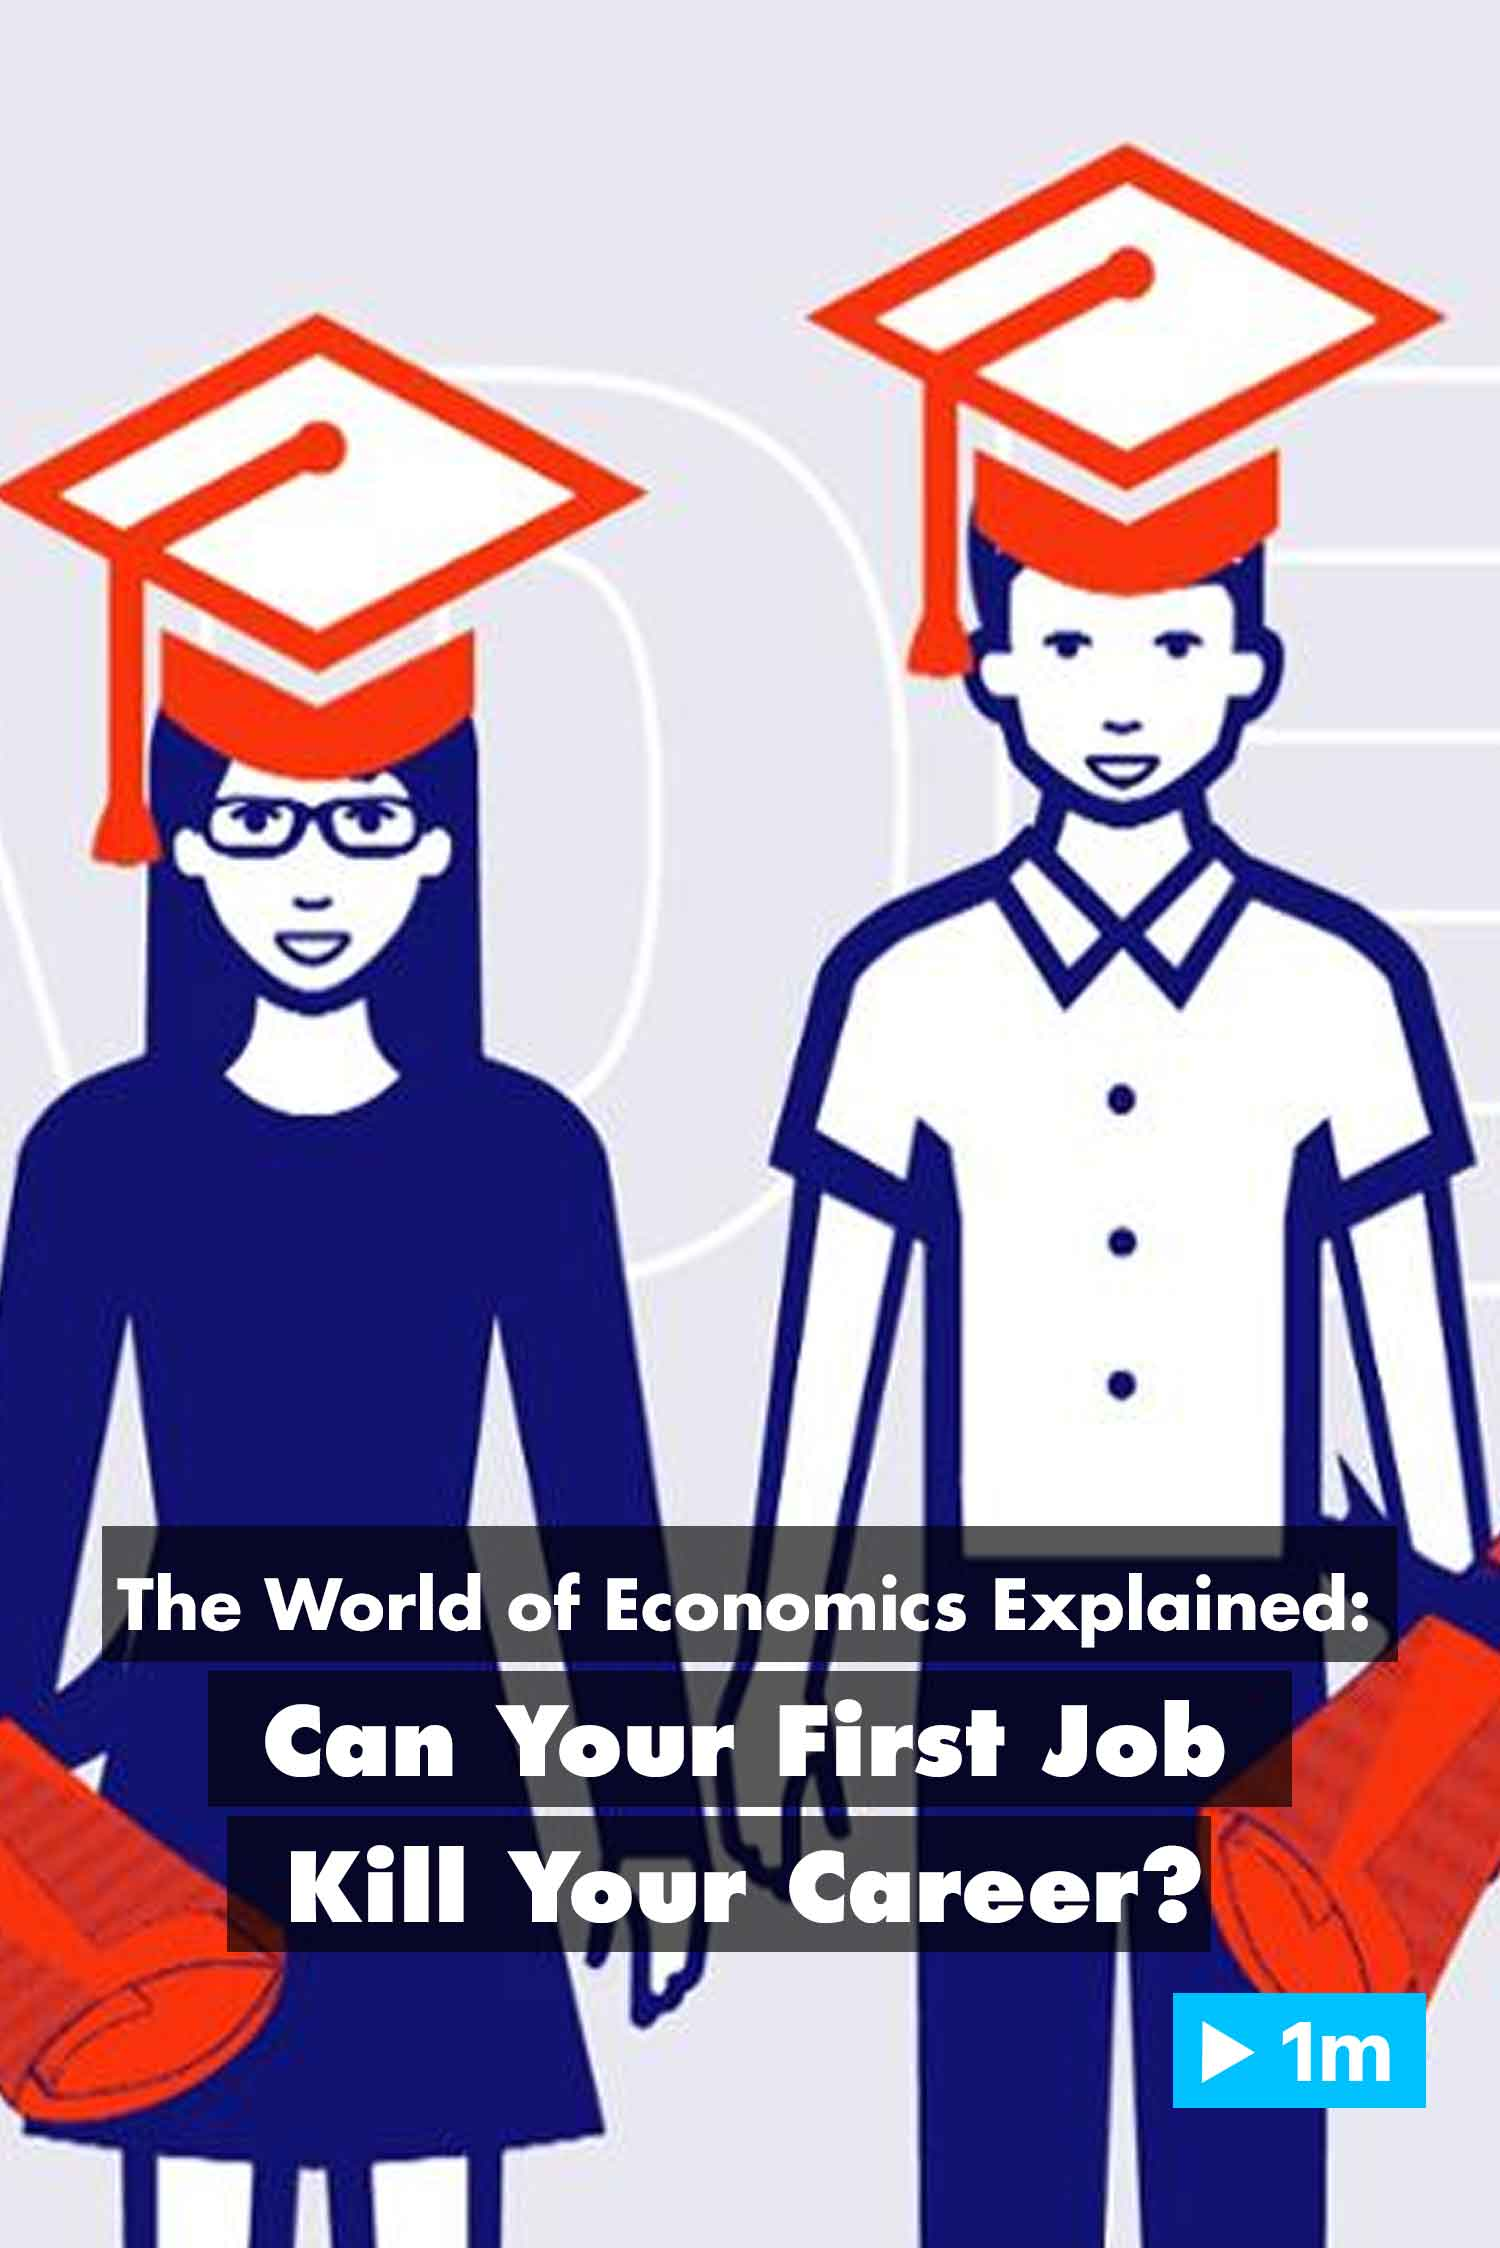 The World of Economics Explained: Can Your First Job Kill Your Career?